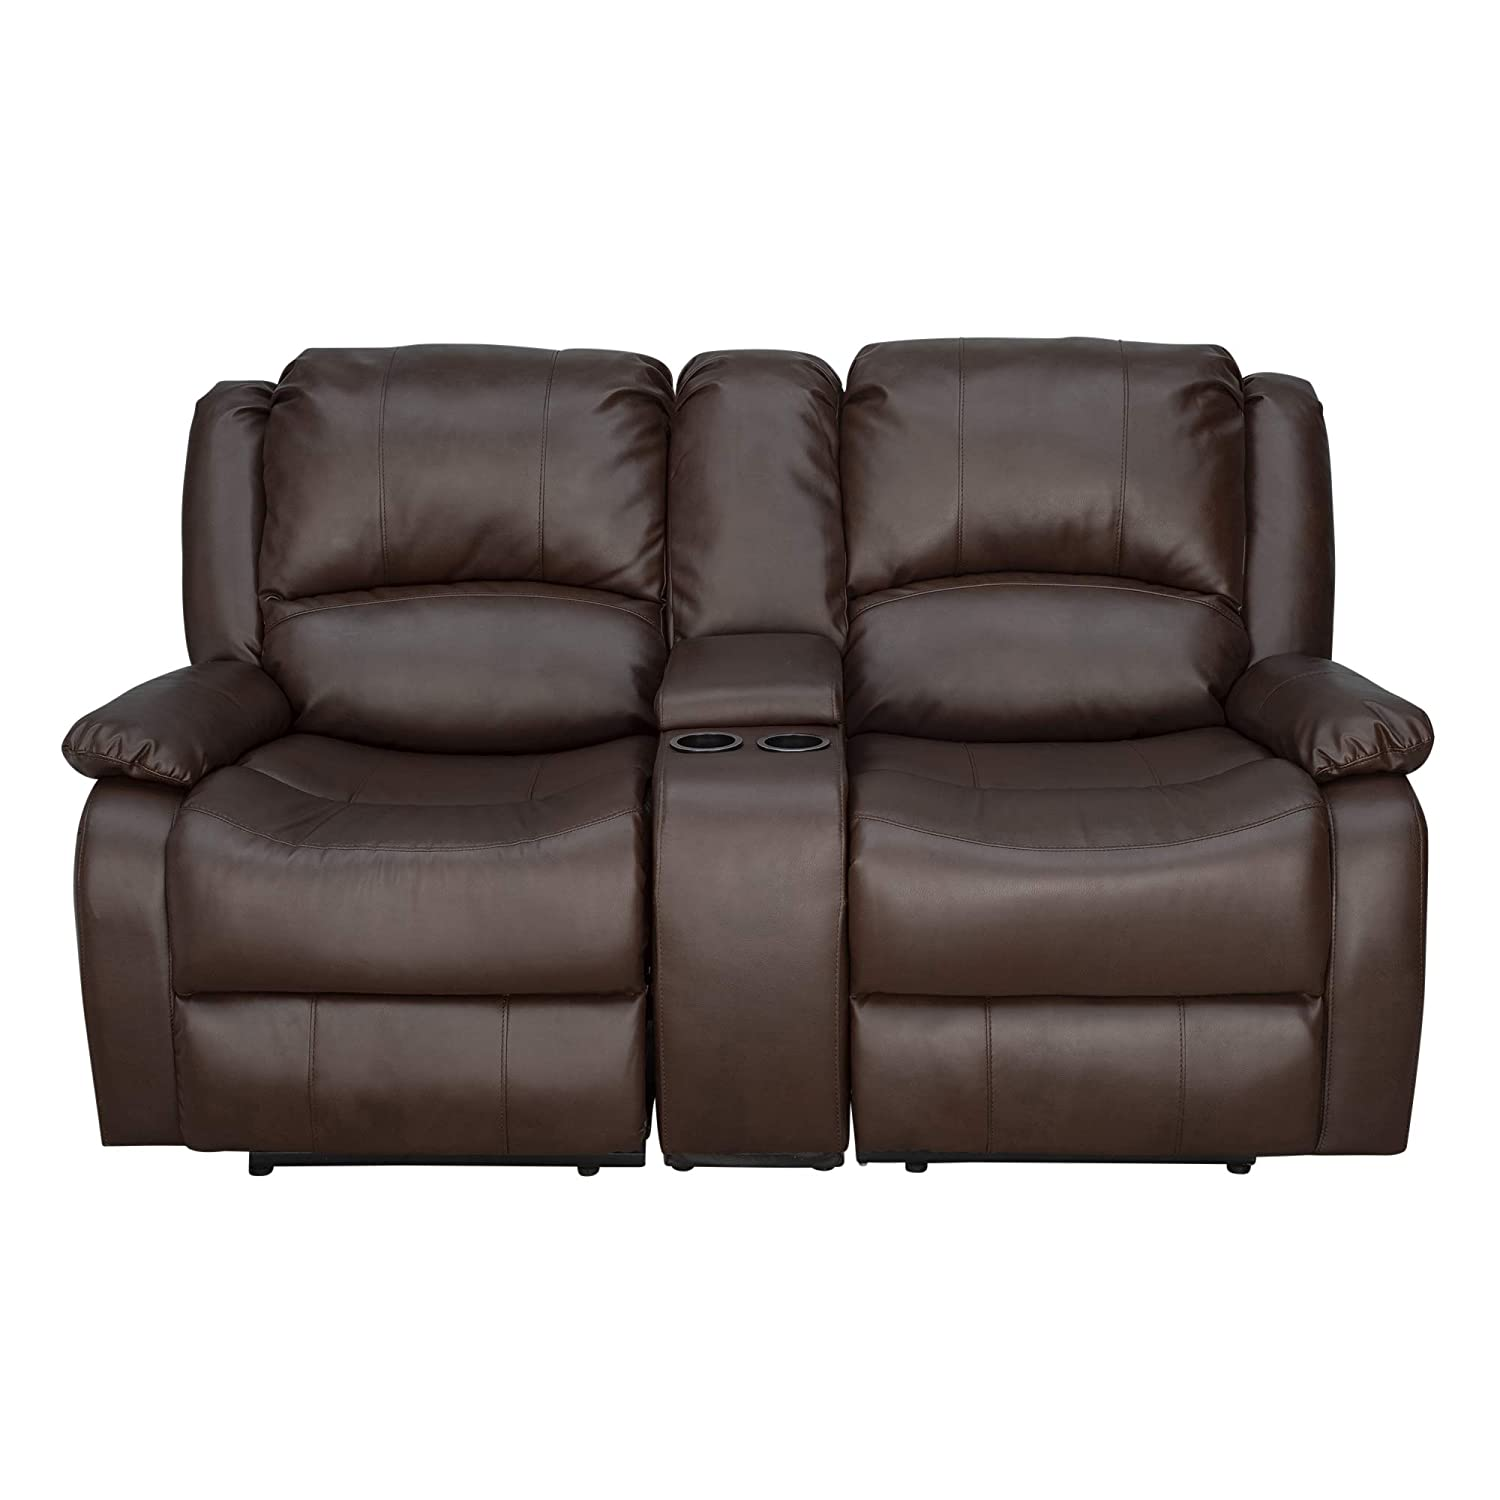 Tremendous Recpro Charles Collection 67 Double Recliner Rv Sofa Console Rv Zero Wall Loveseat Wall Hugger Recliner Rv Theater Seating Rv Furniture Camellatalisay Diy Chair Ideas Camellatalisaycom